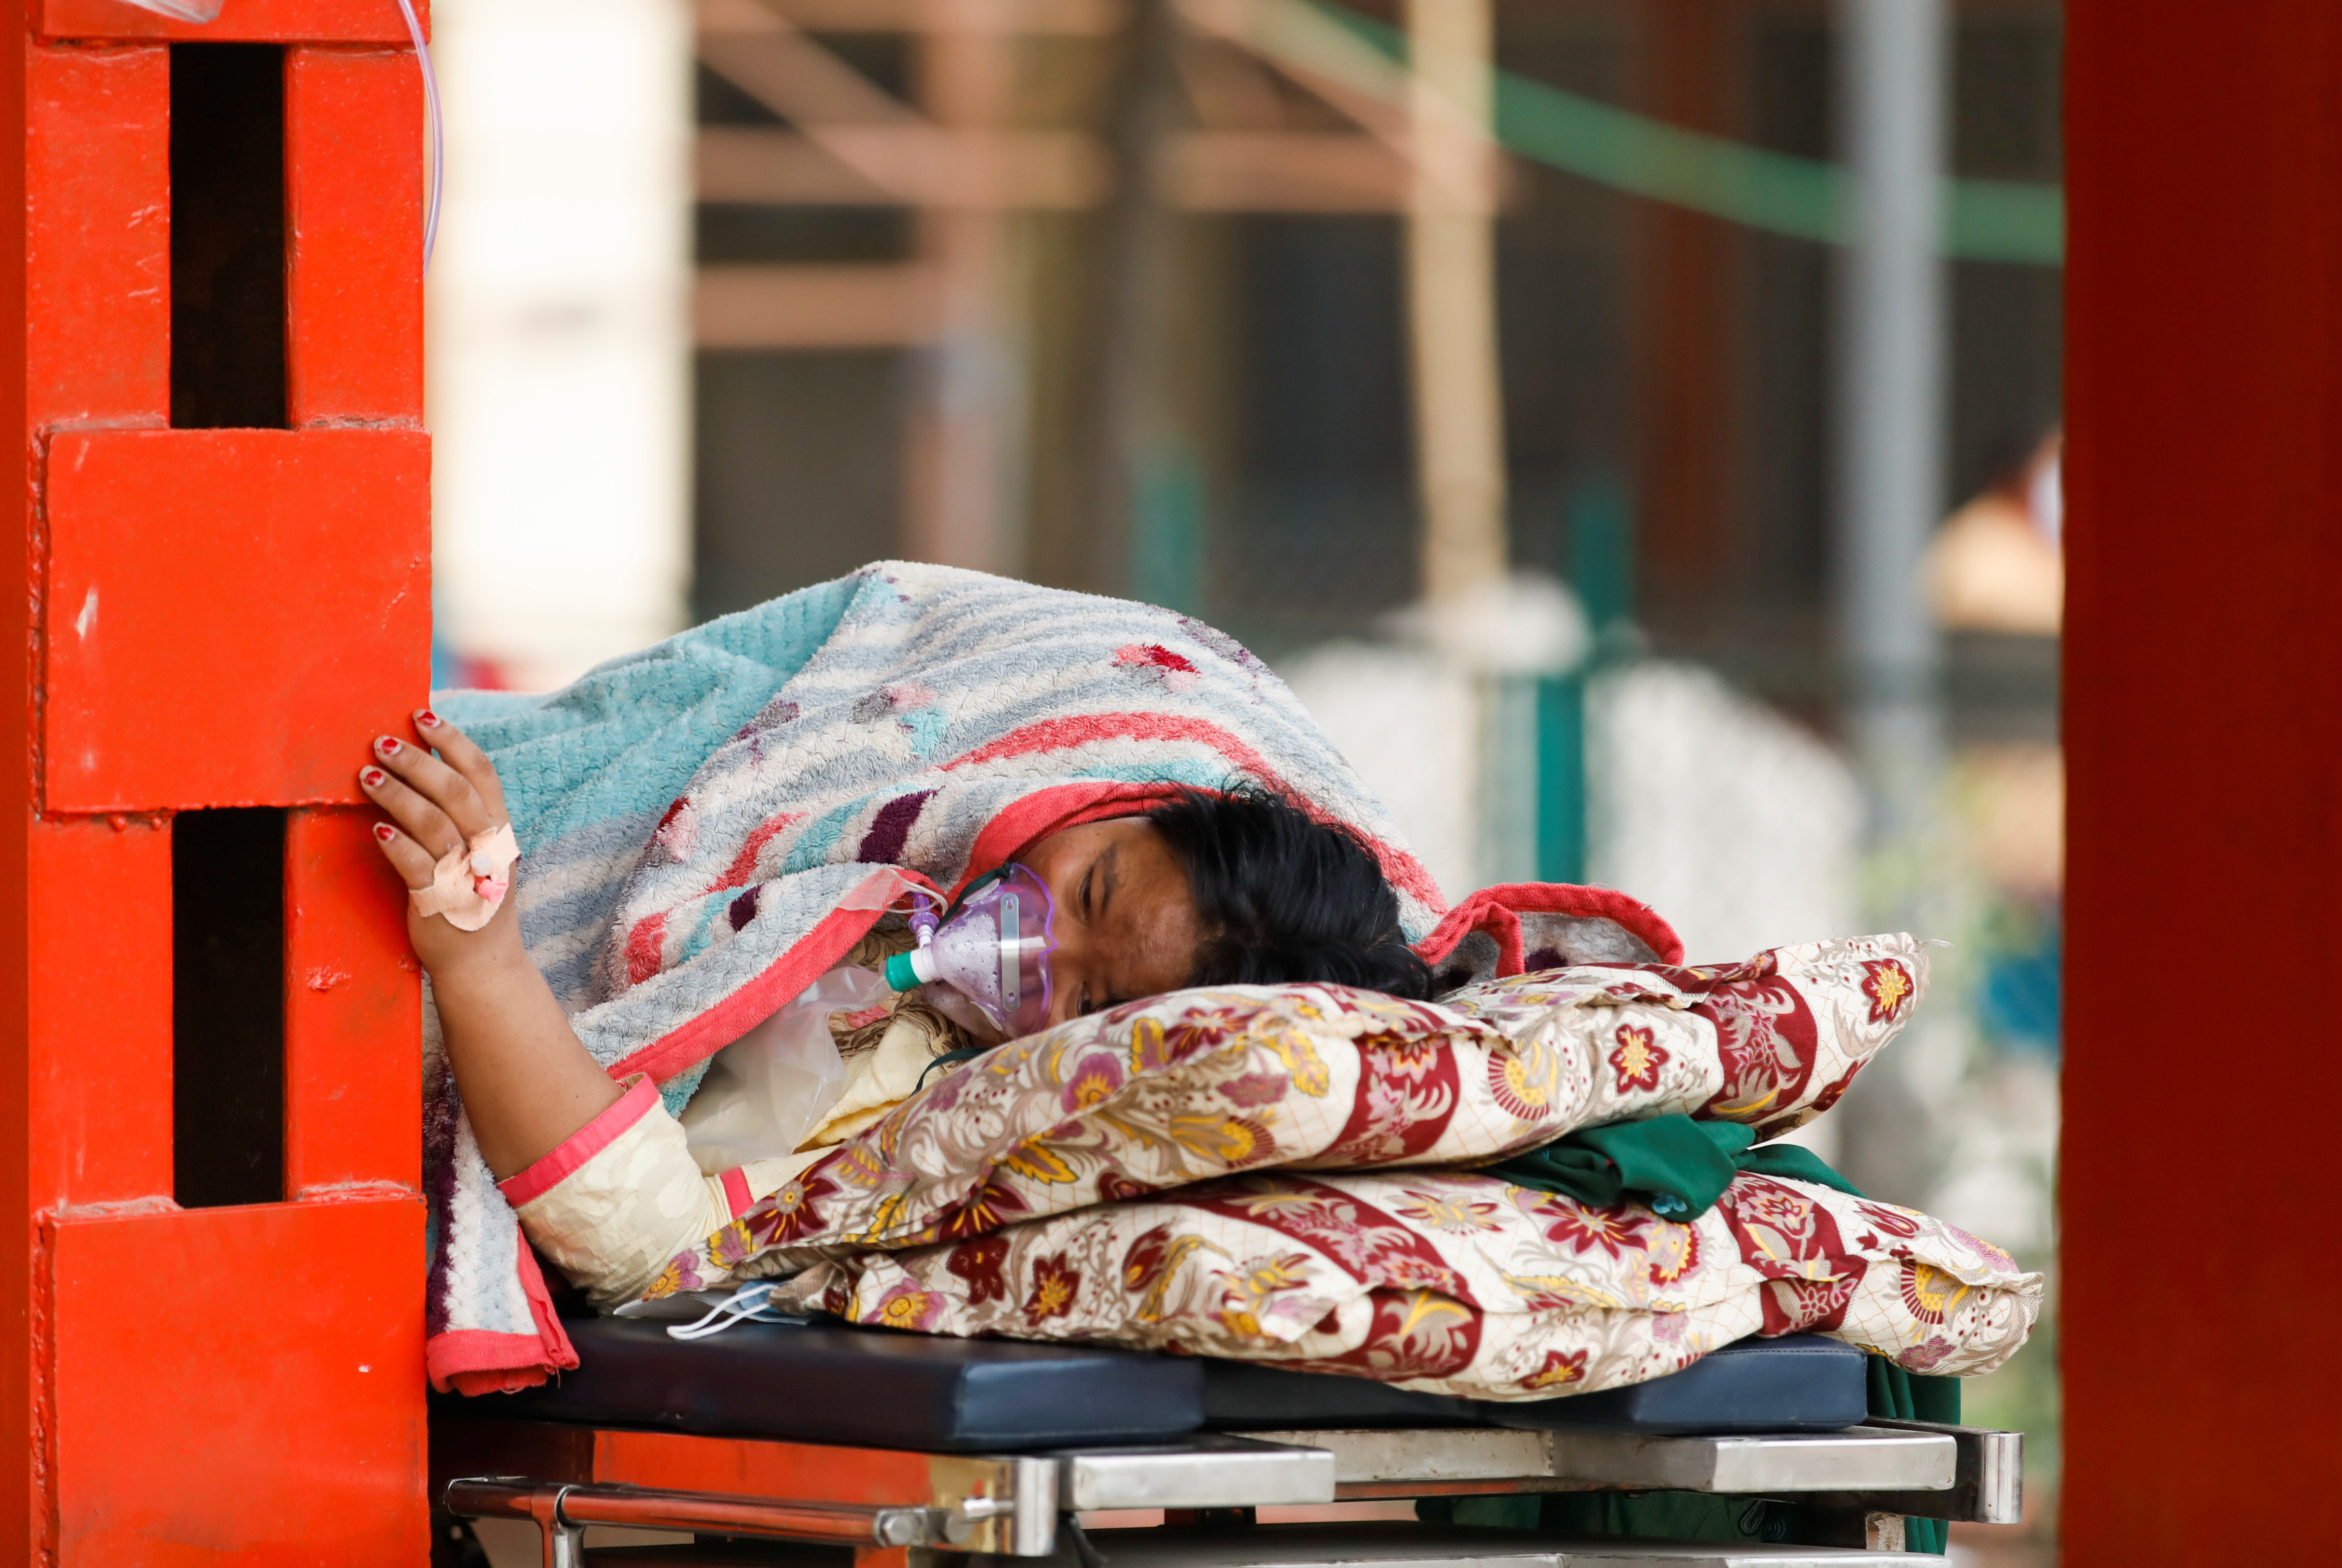 A patient receives oxygen as she waits outside the passage of a hospital due to a lack of free beds inside the hospital for coronavirus disease (COVID-19) patients, as the second major coronavirus wave surges in Kathmandu, Nepal, May 10, 2021. REUTERS/Navesh Chitrakar